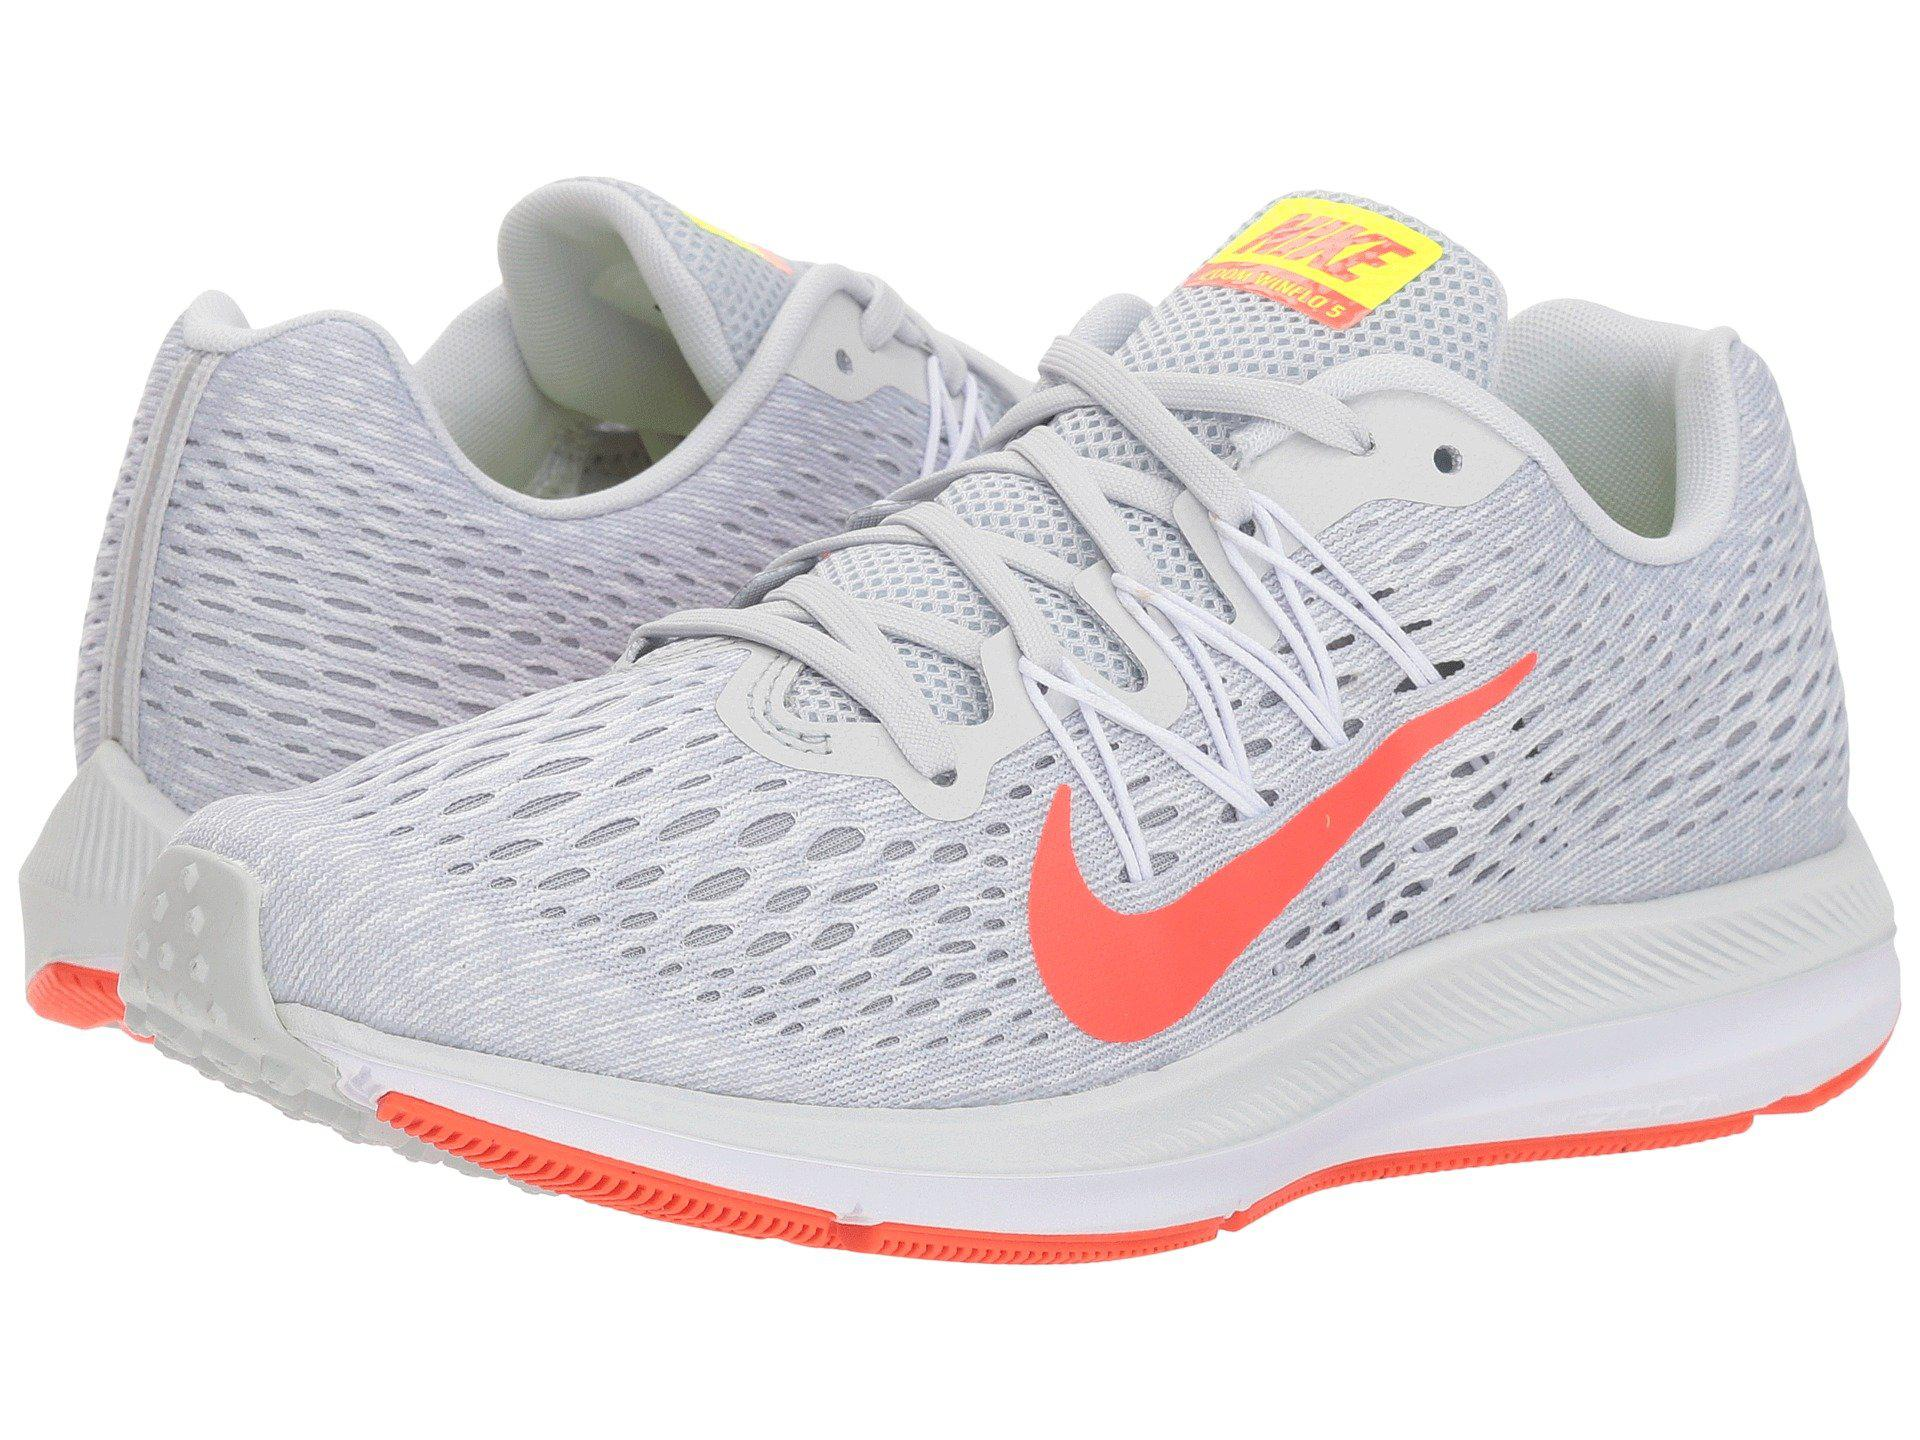 42a34bf881 Nike. Women s Air Zoom Winflo 5